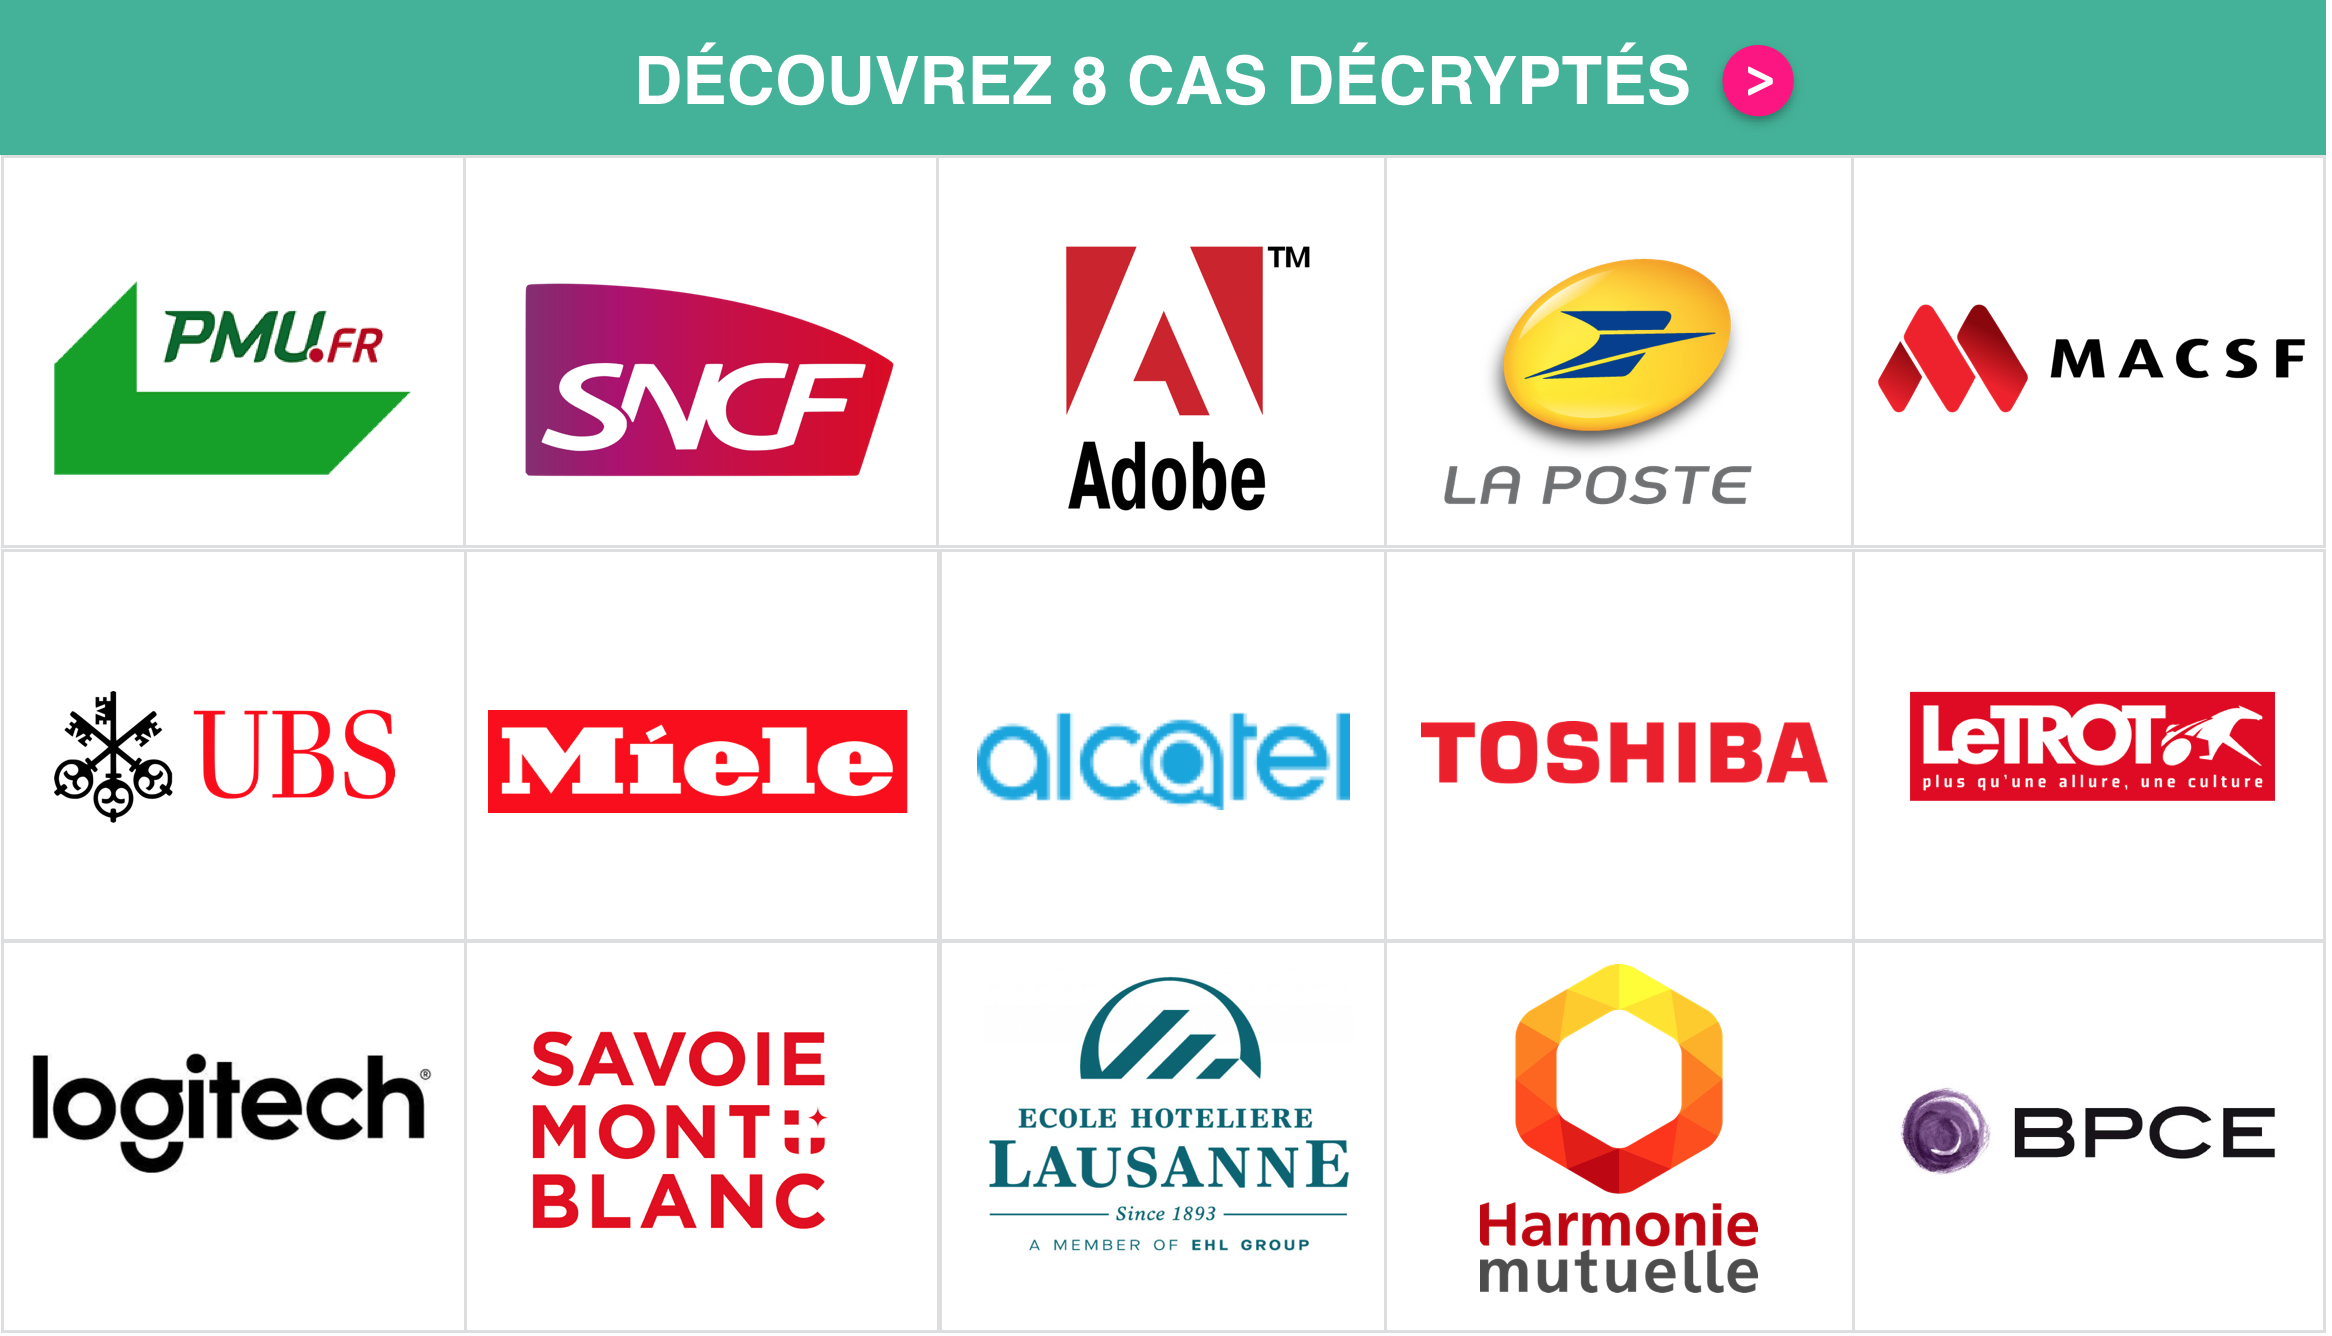 agence digitale paris cas clients references eficiens alt